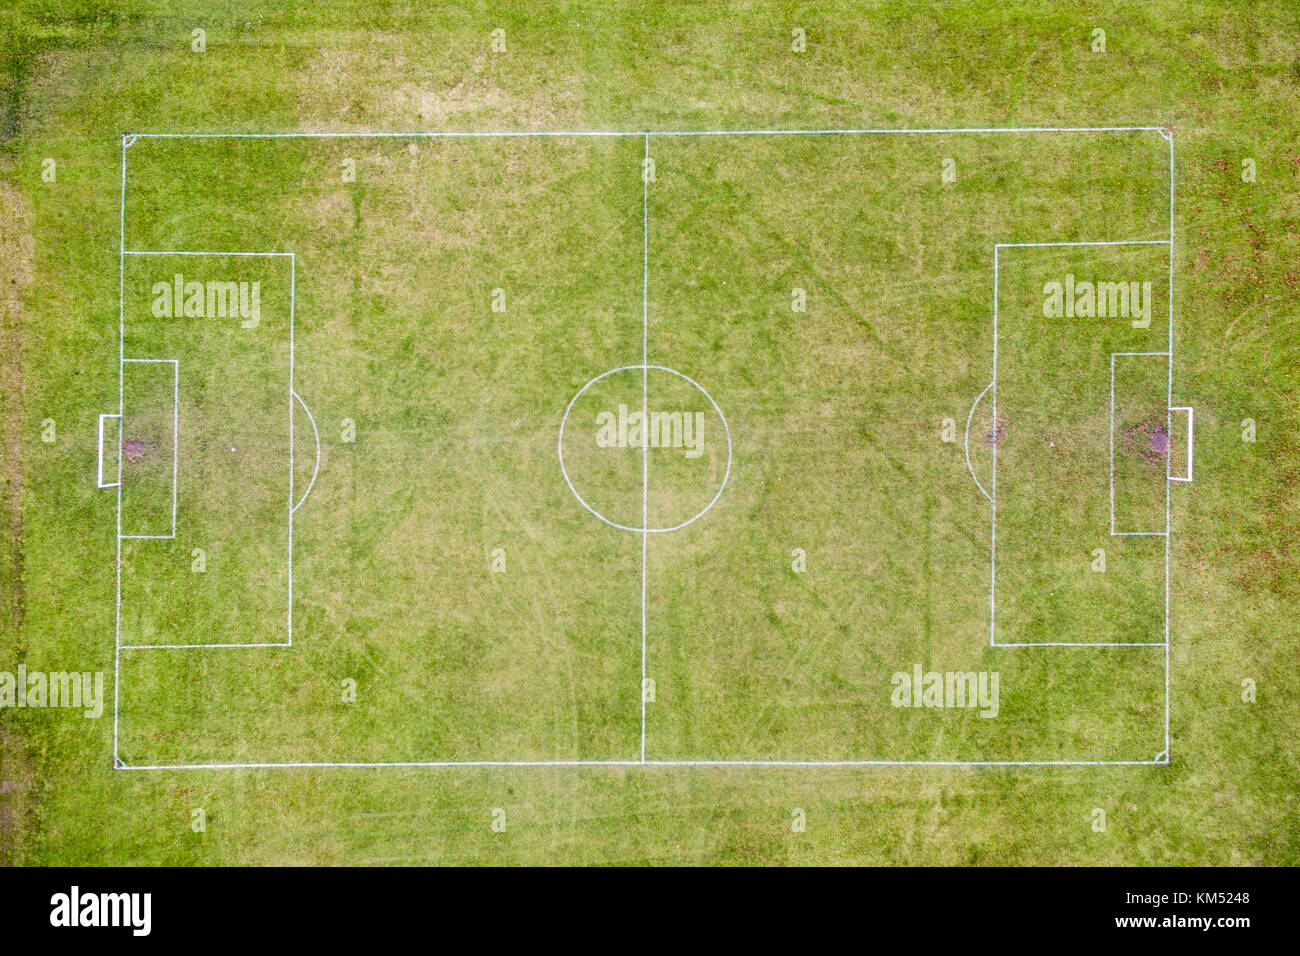 overhead aerial view of football pitch layout - Stock Image